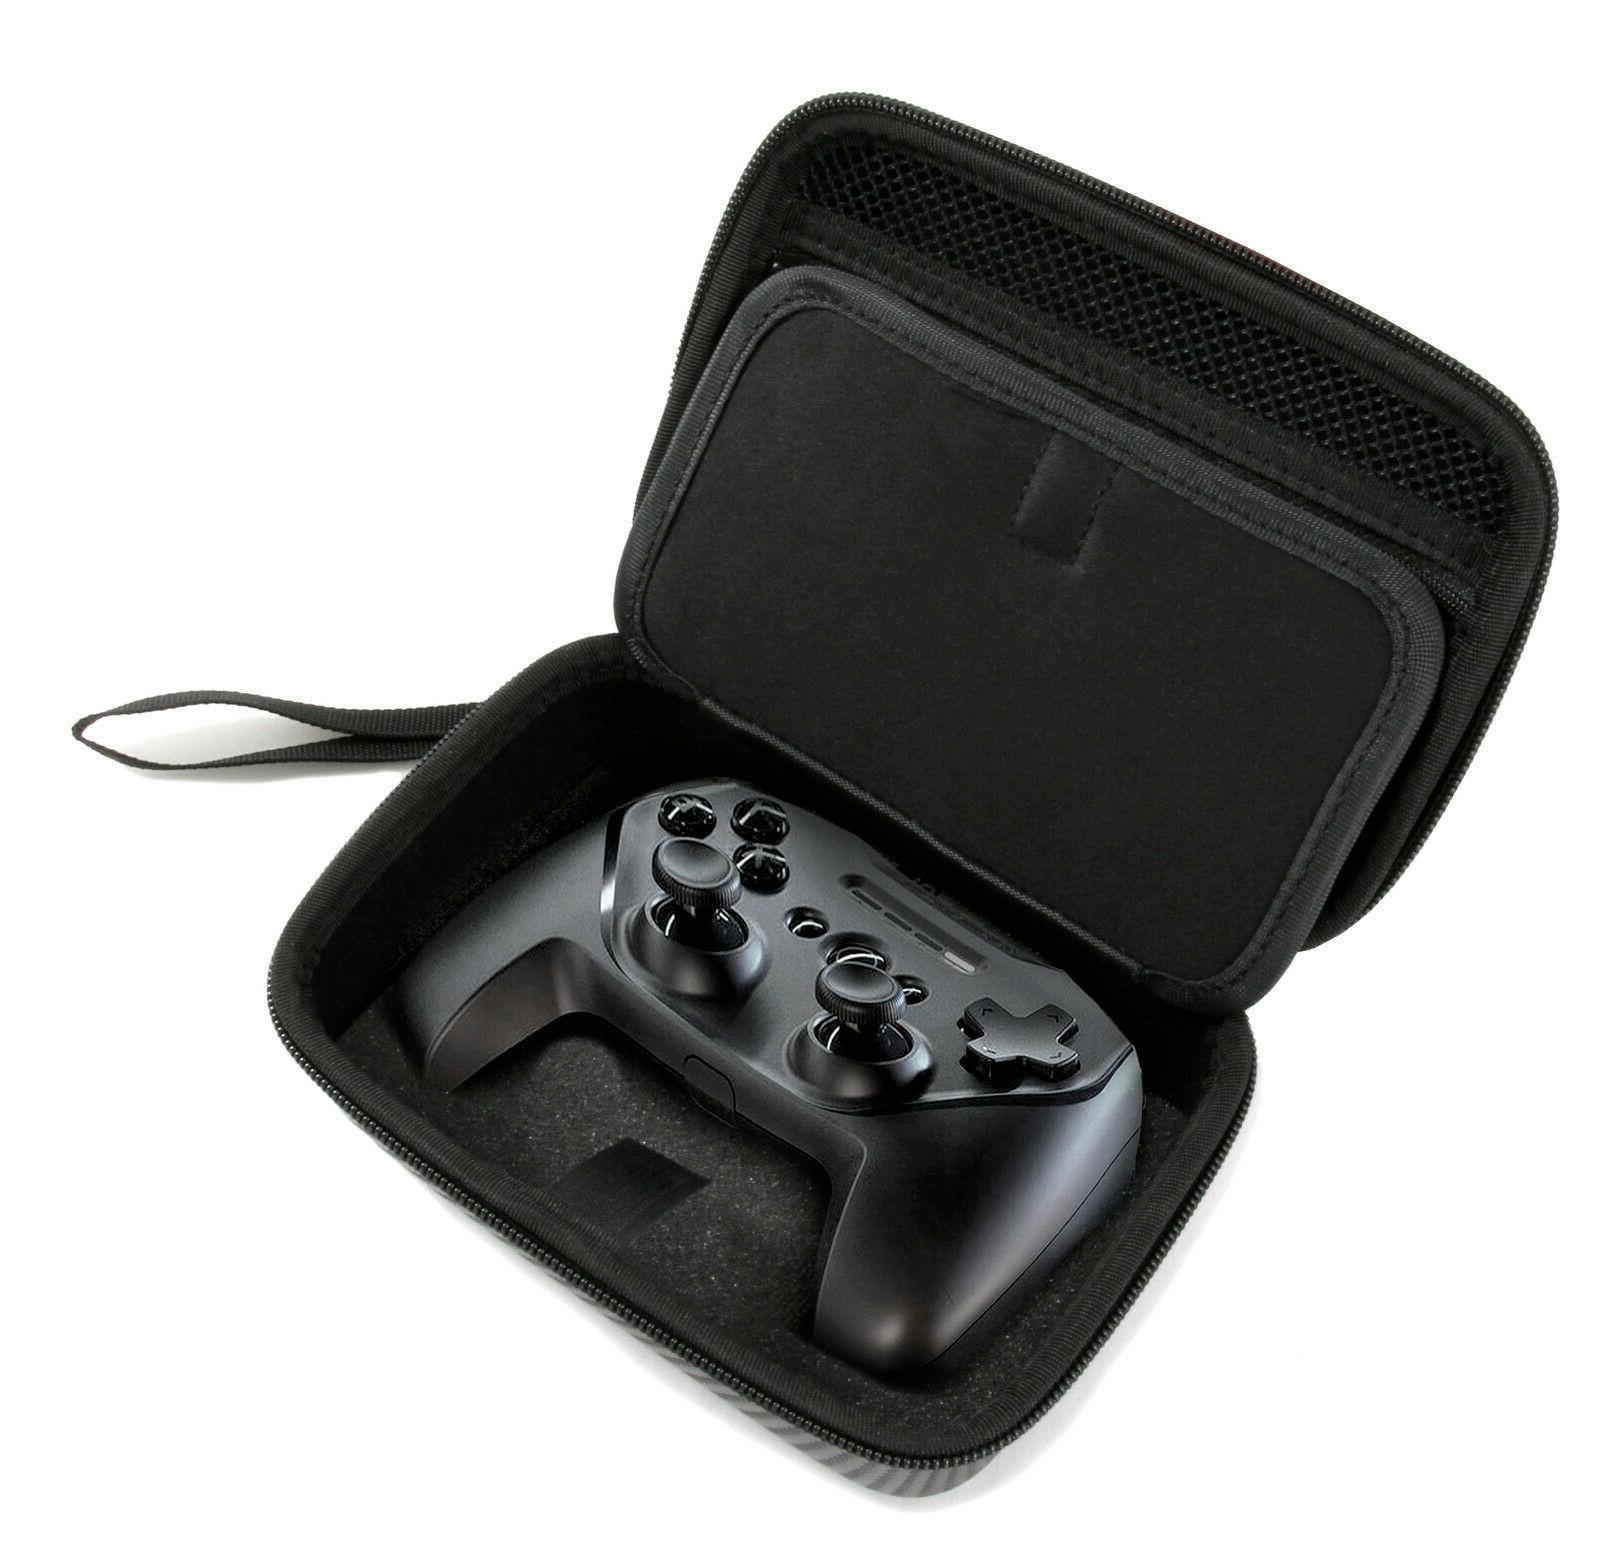 gaming controller case fits seelseries stratus duo